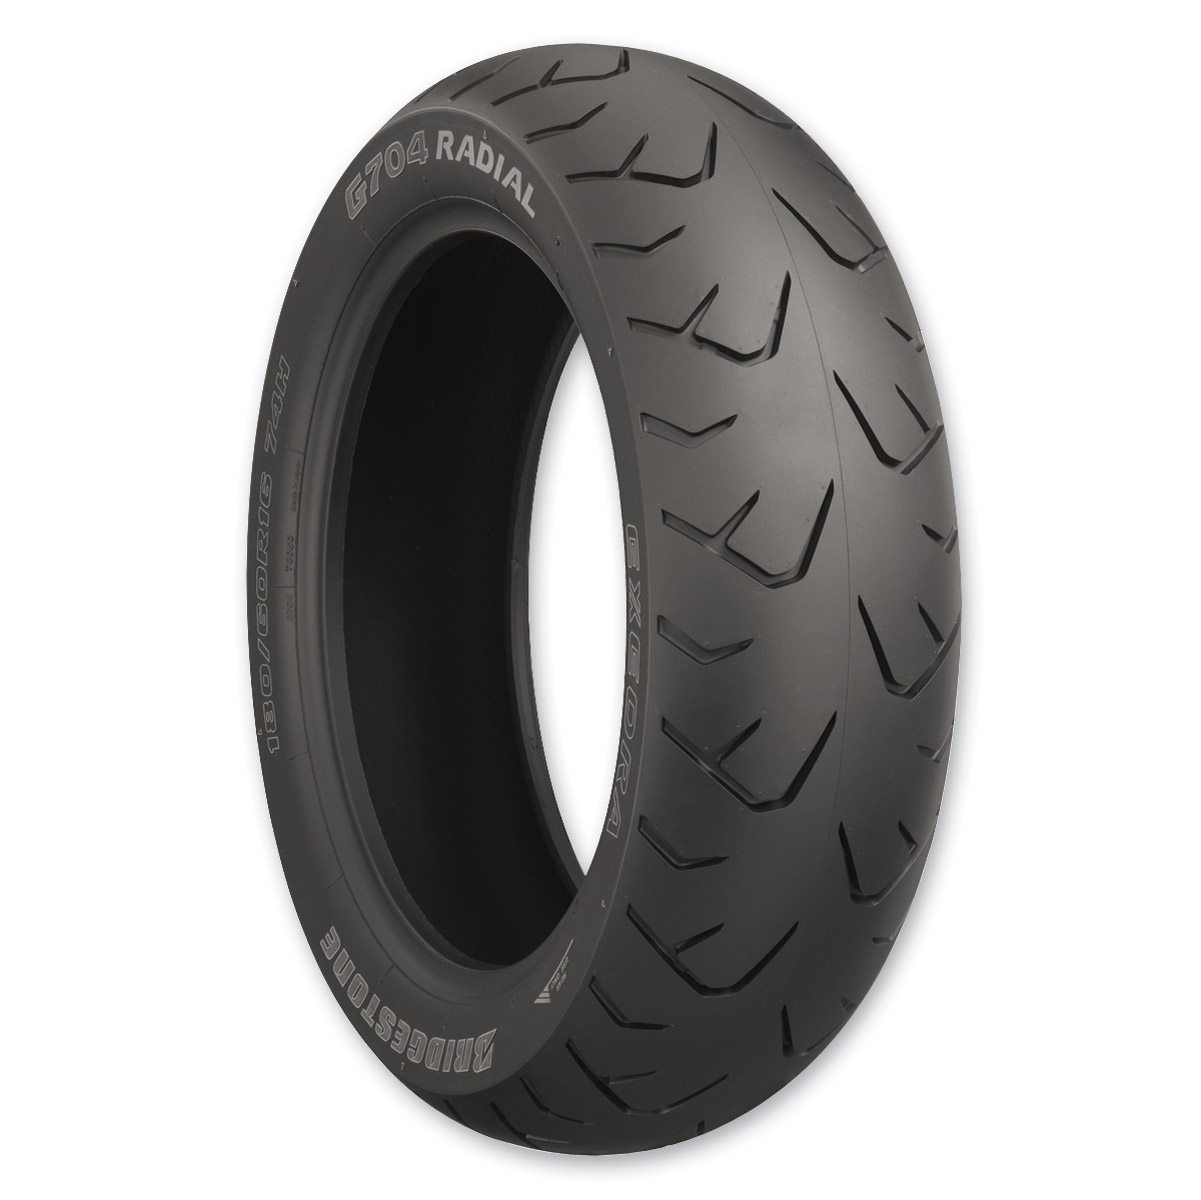 Bridgestone Exedra G704 180/60R16 Rear Tire